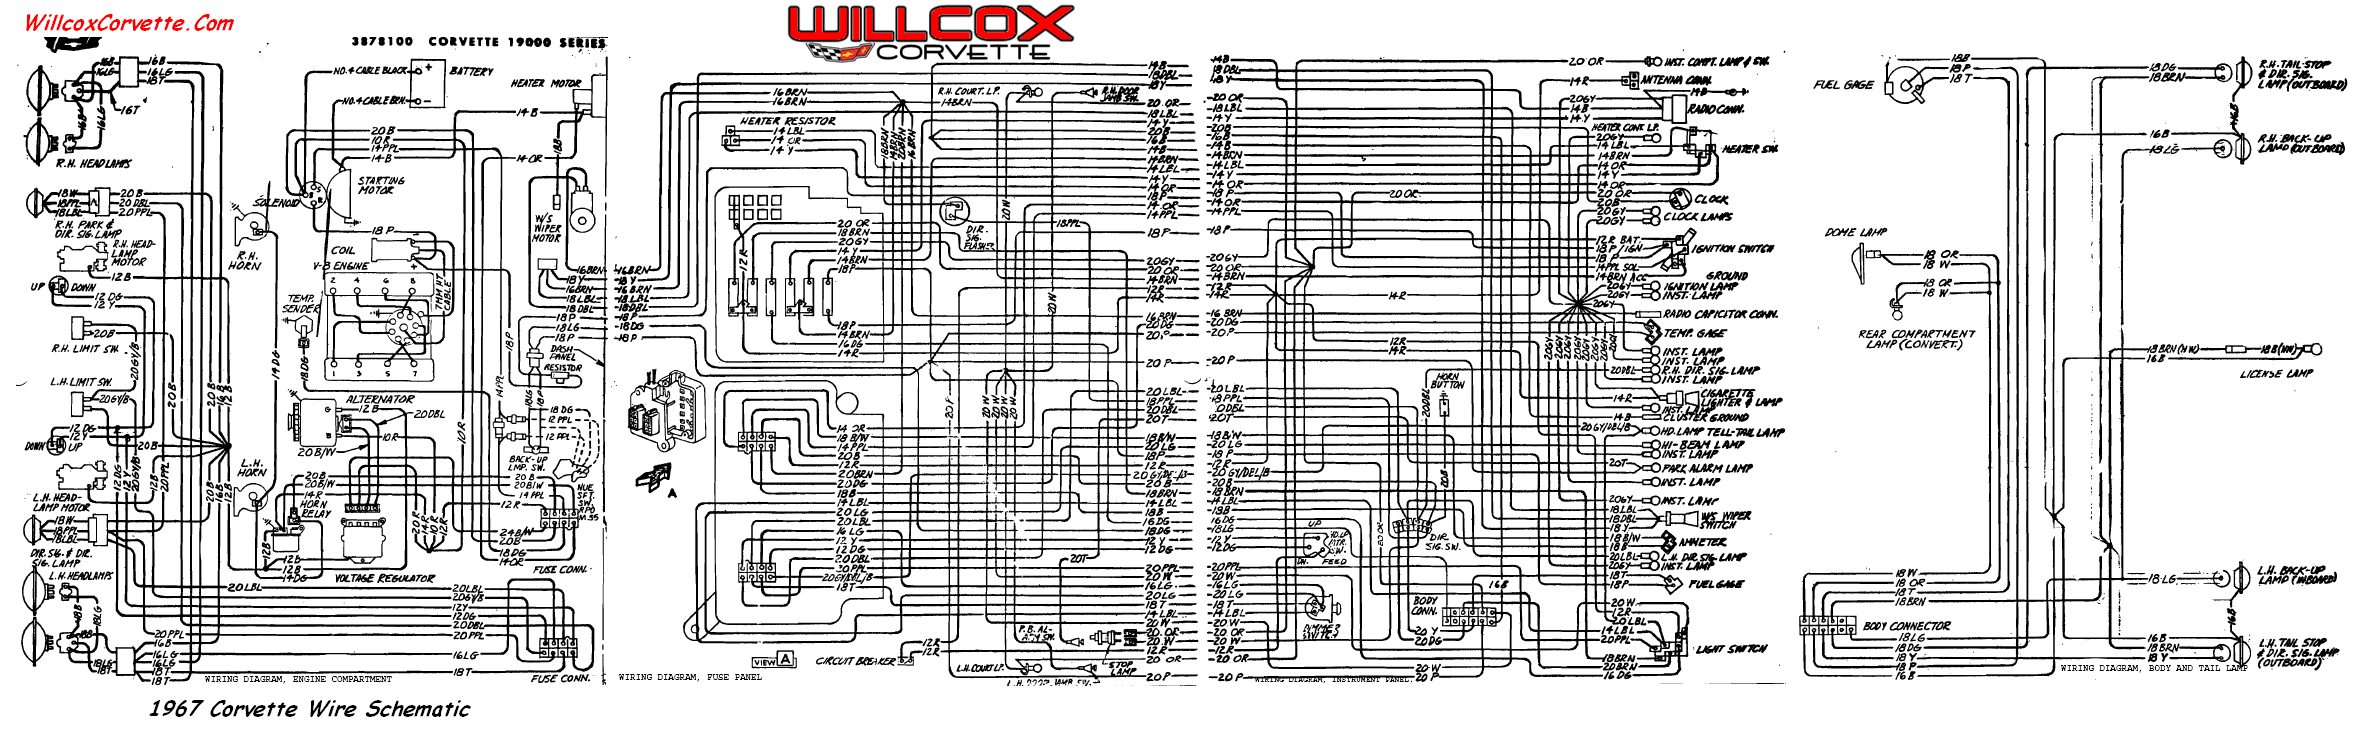 67 wire schematic for tracing wires 1967 corvette wiring diagram (tracer schematic) willcox corvette 1976 corvette wiring harness at gsmx.co